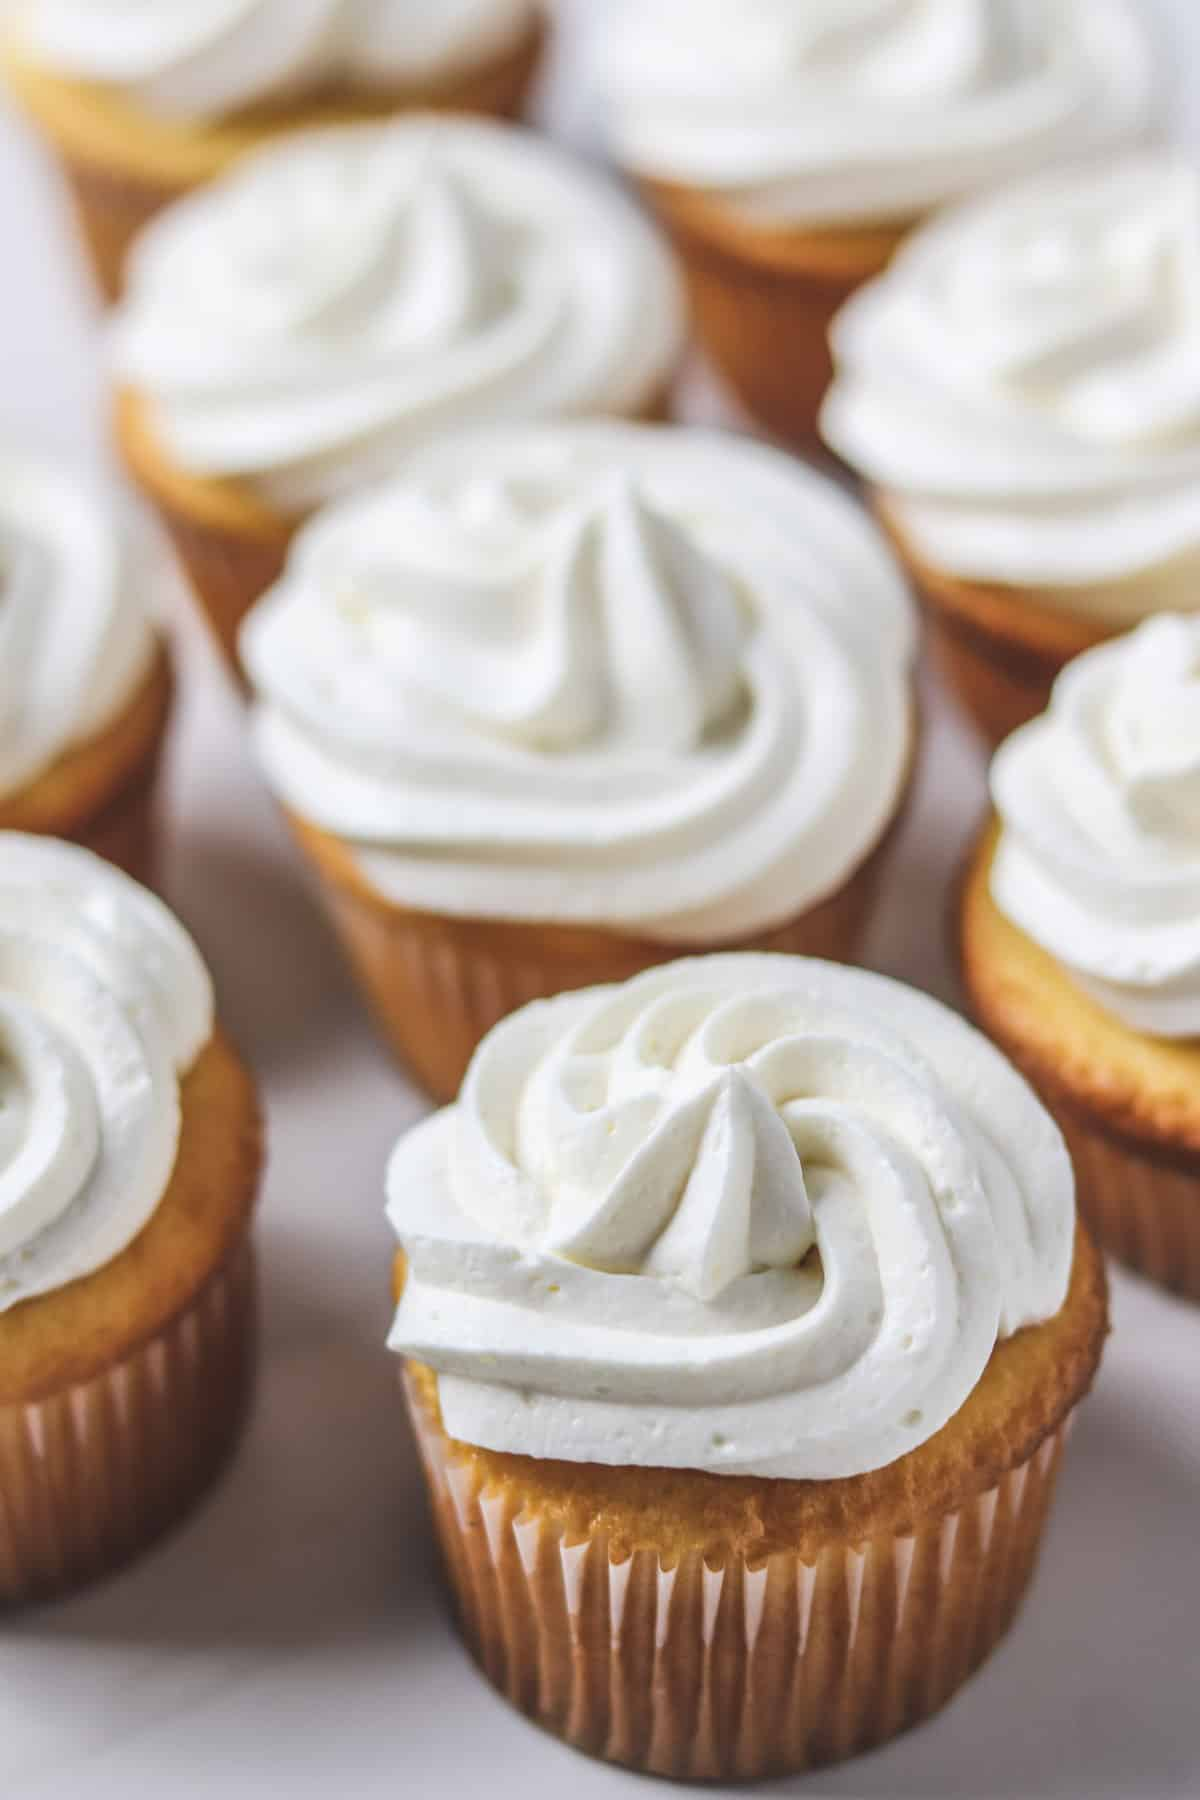 sugar-free frosting piped on vanilla cupcakes